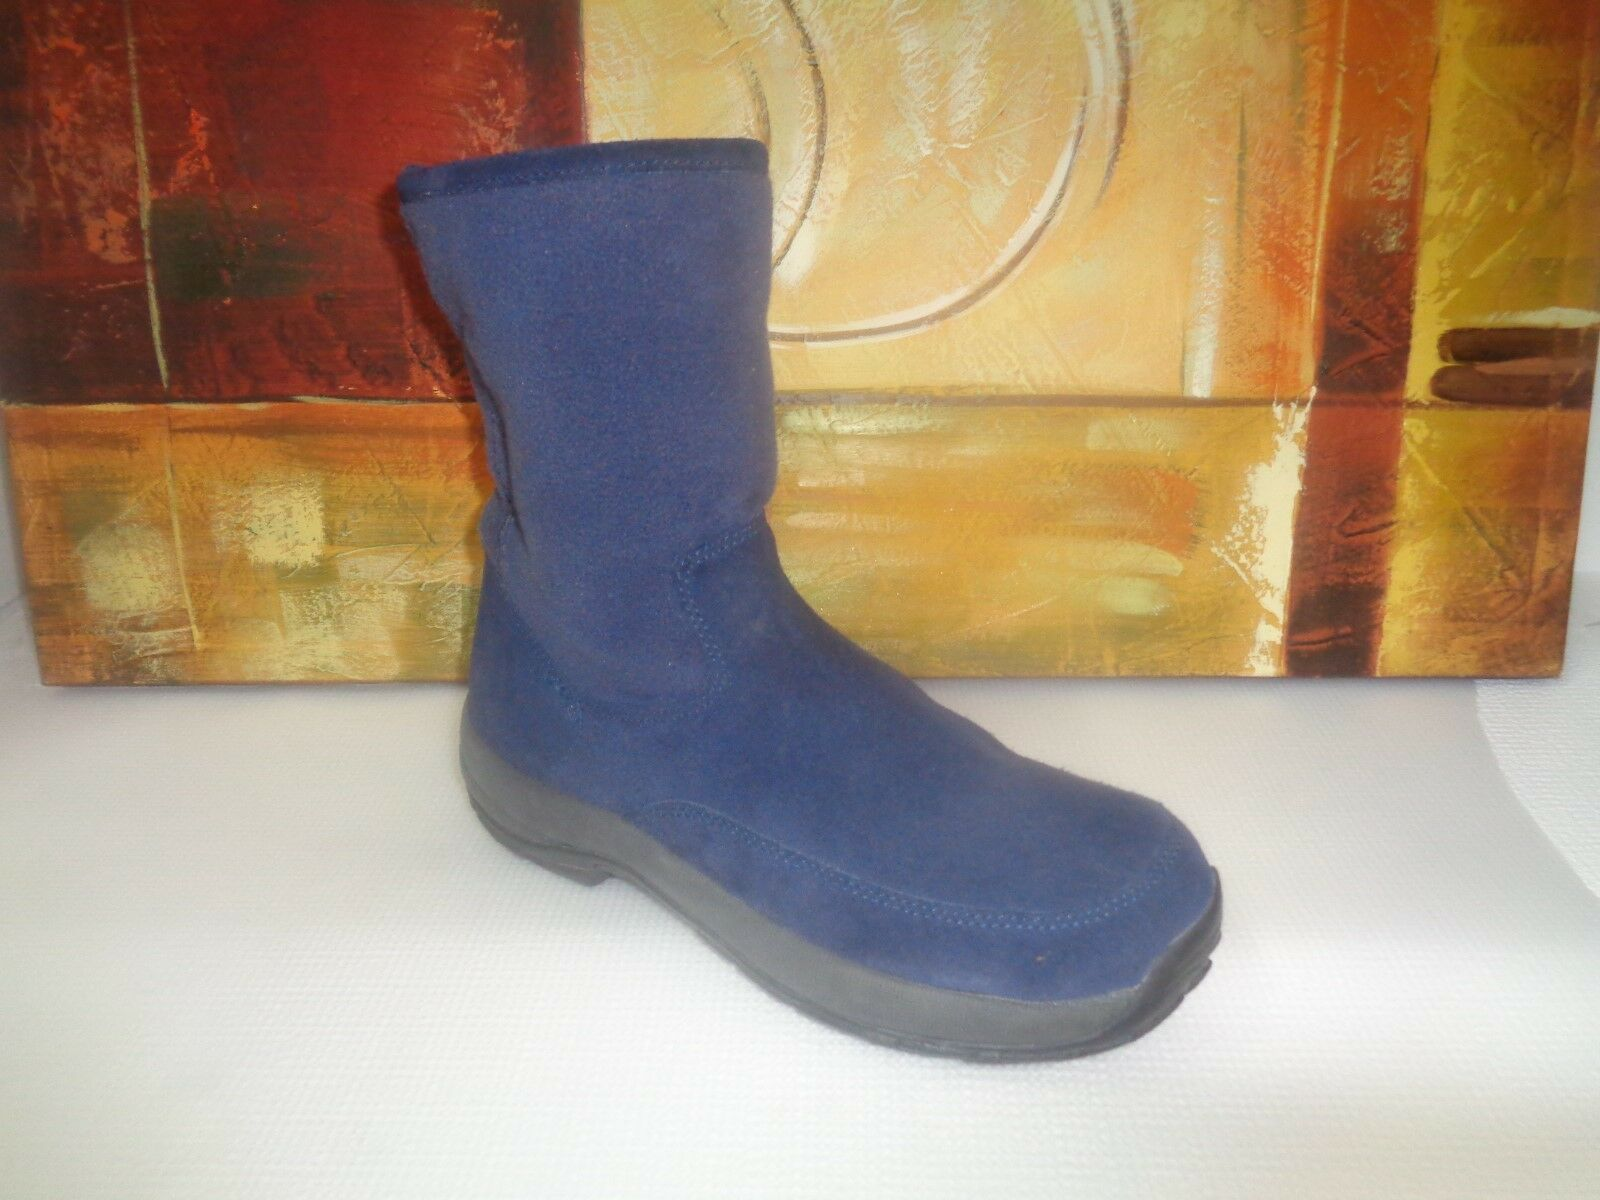 L.L. Bean Suede Leather Ankle Boots Royal bluee Women's Size 9